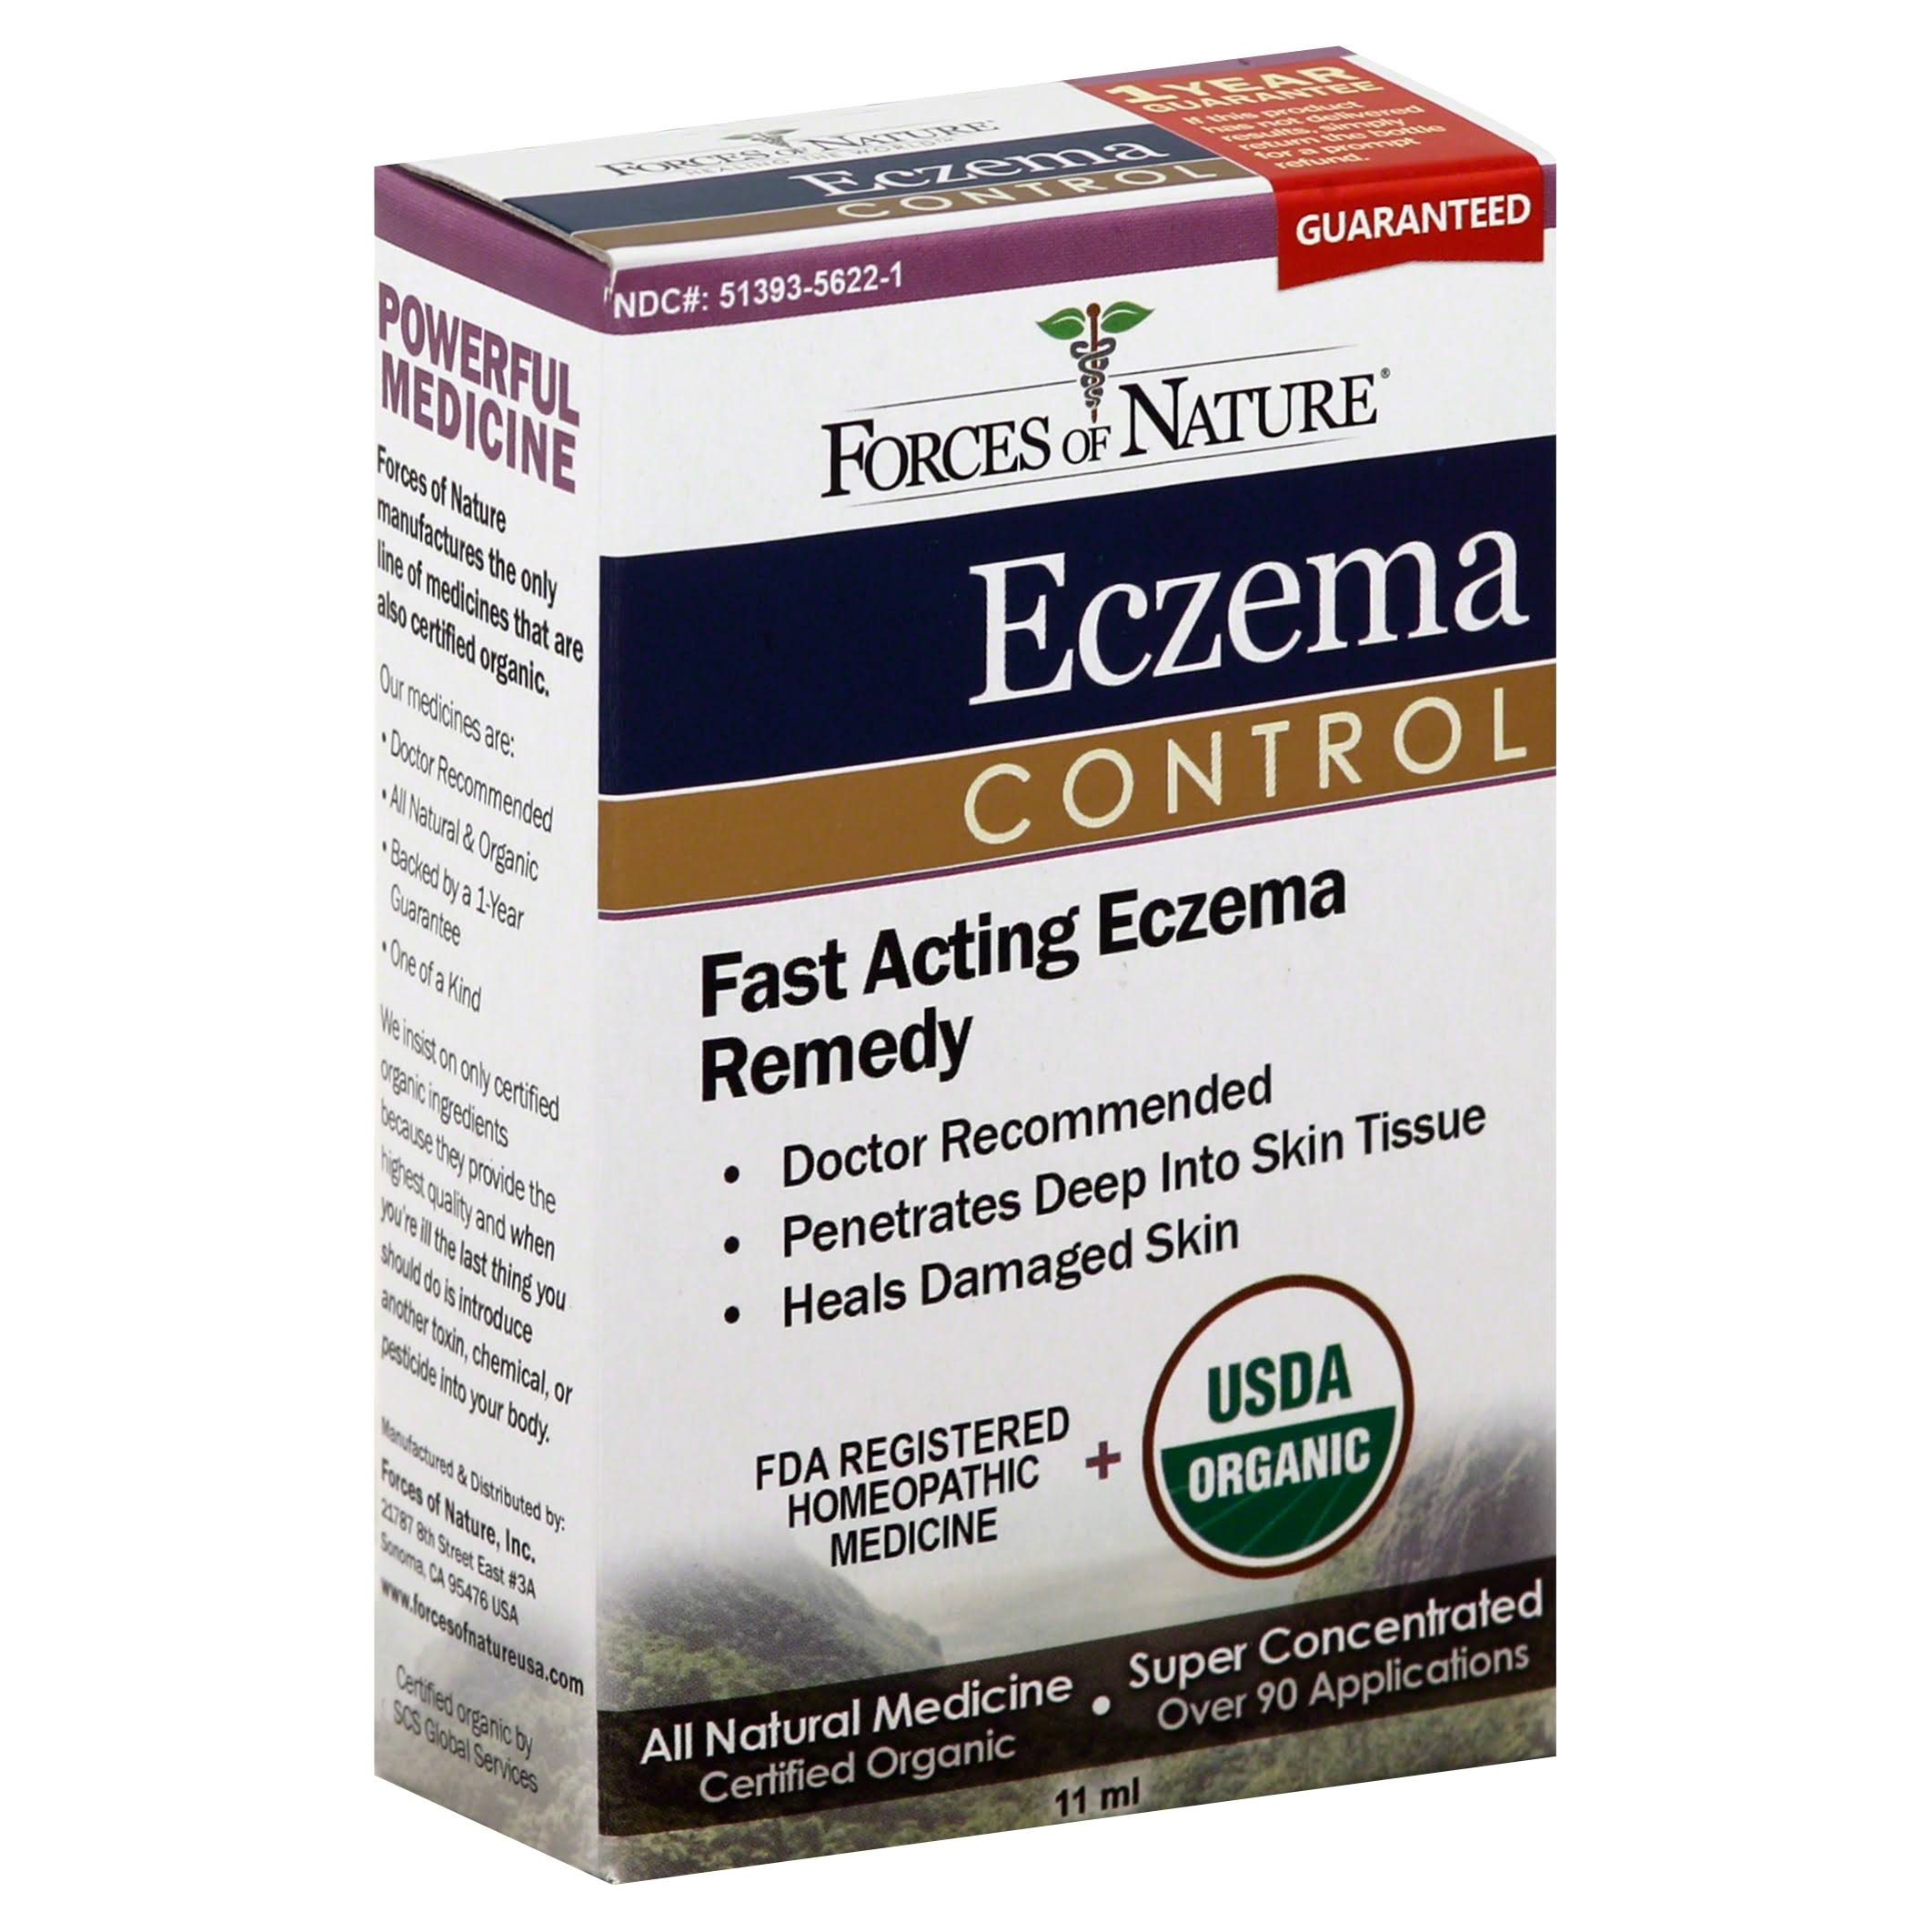 Forces of Nature Eczema Control - 11ml